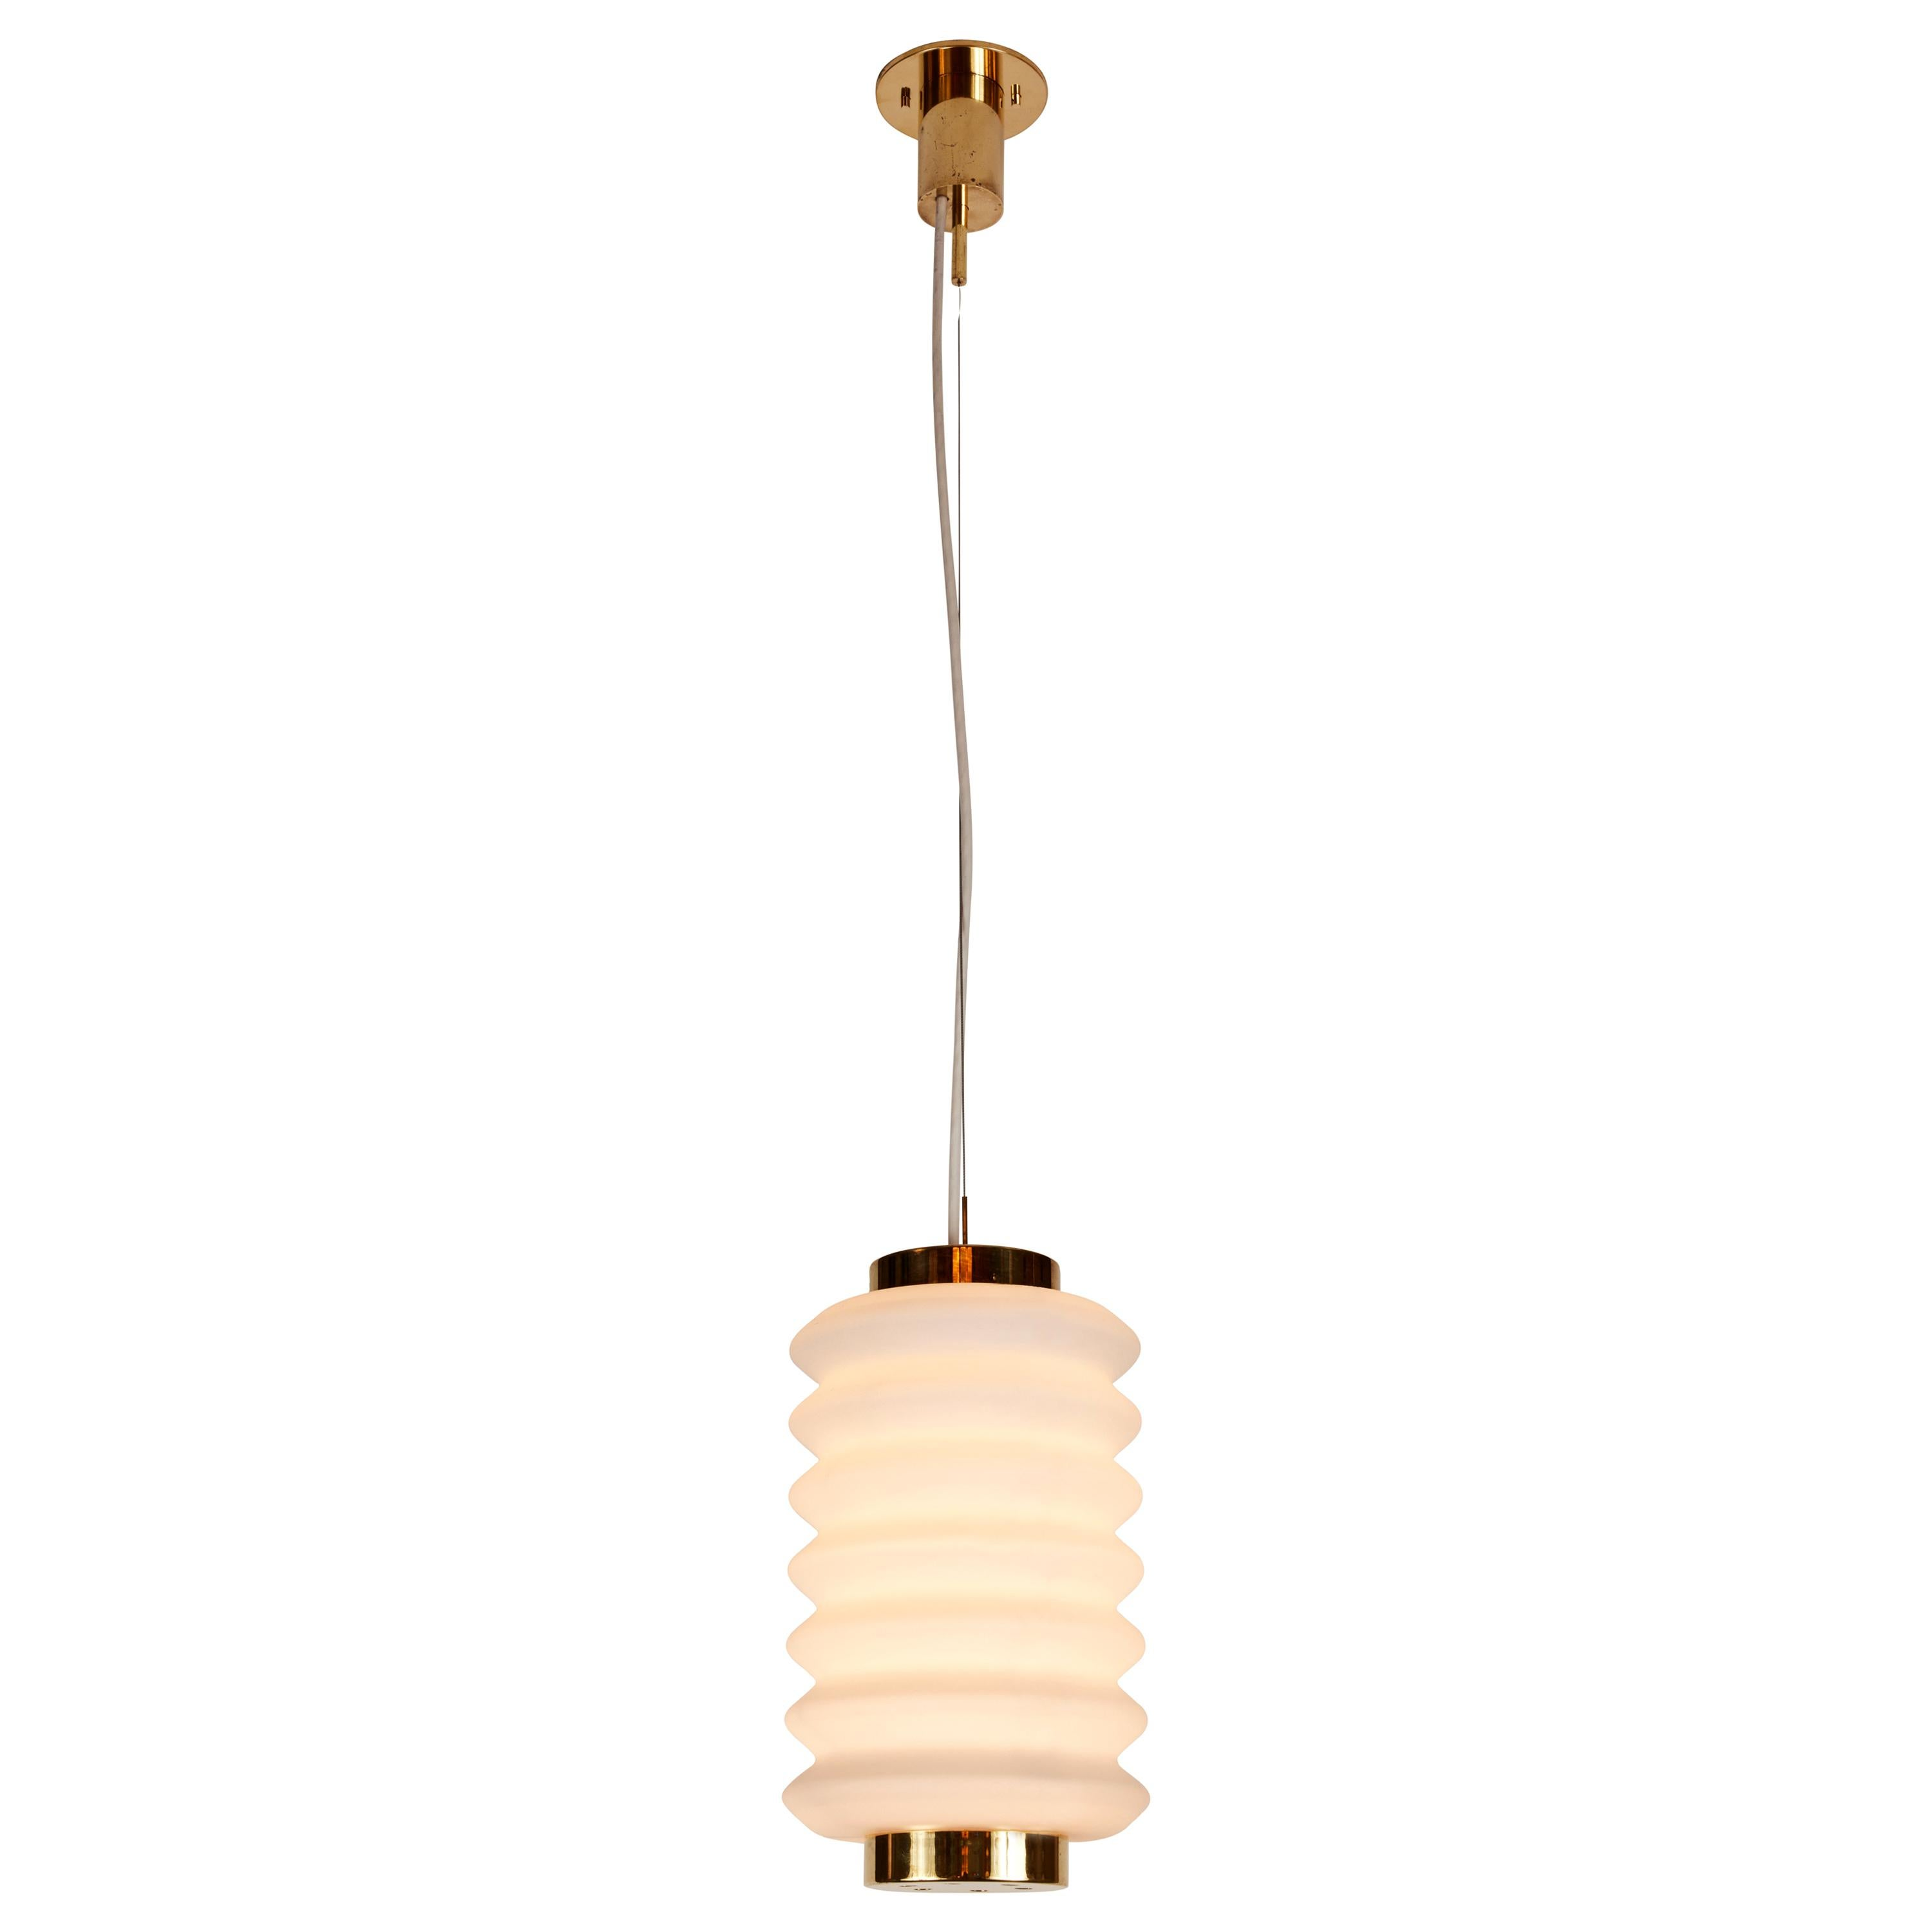 Rare 1950s Angelo Lelli Glass and Brass Suspension Lamp for Arredoluce